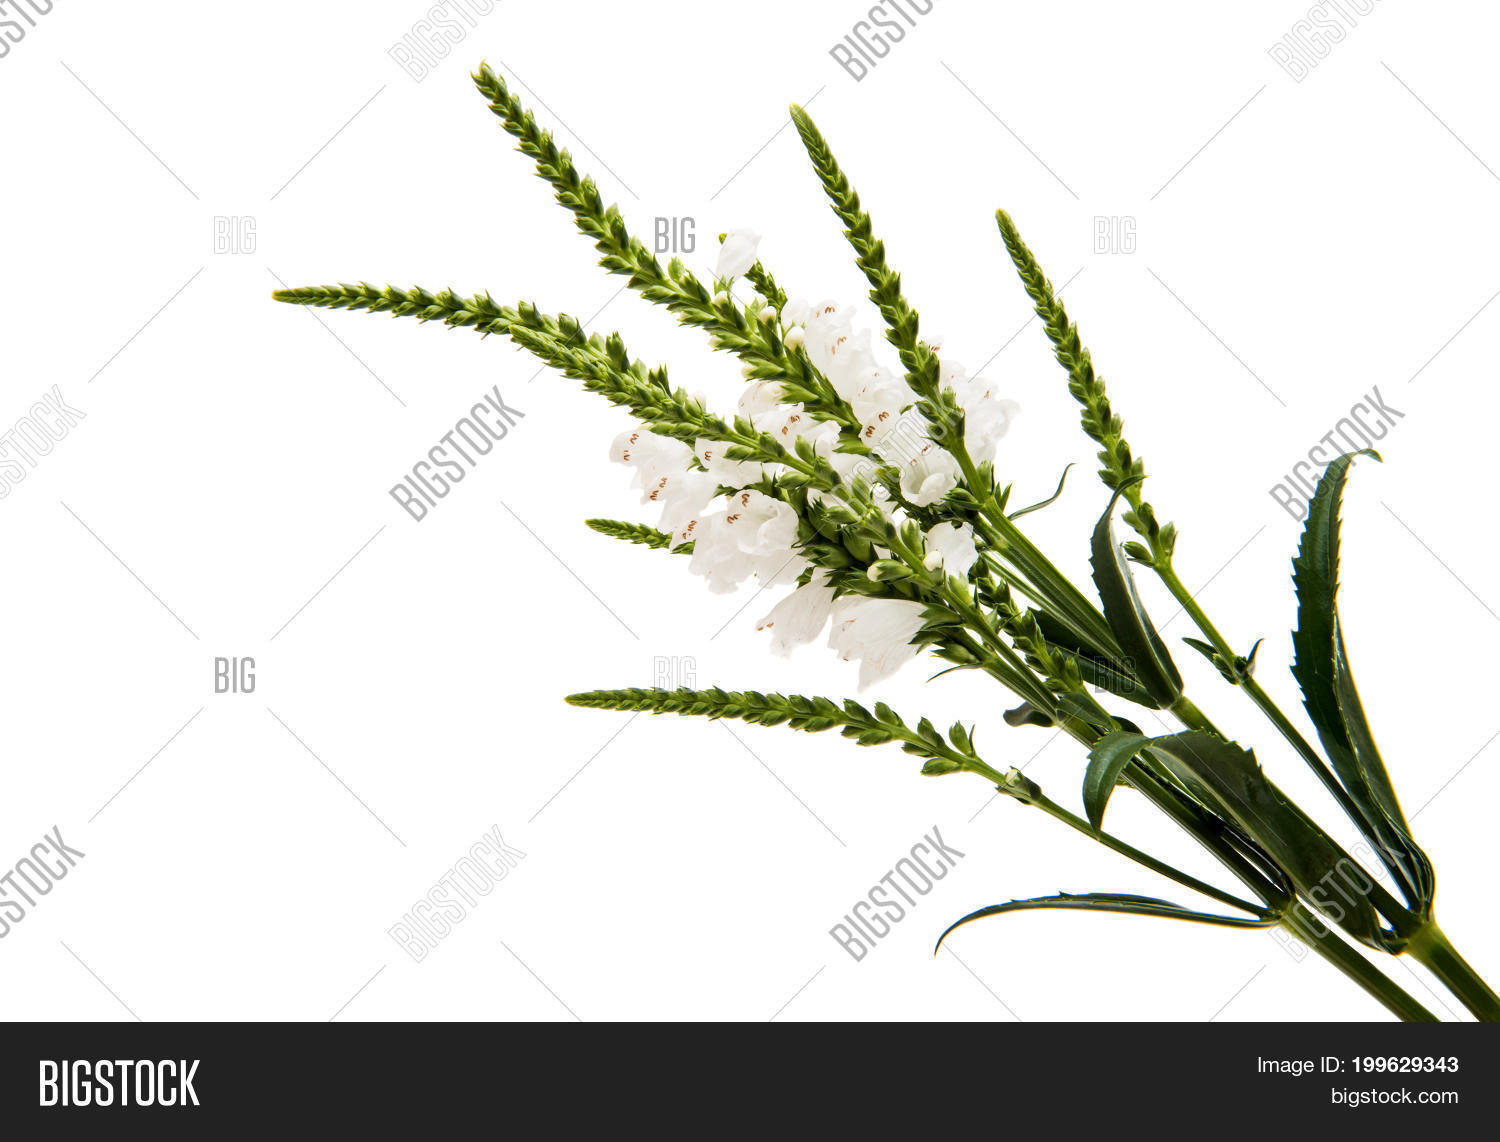 Veronica white flower image photo free trial bigstock veronica white flower on a white background mightylinksfo